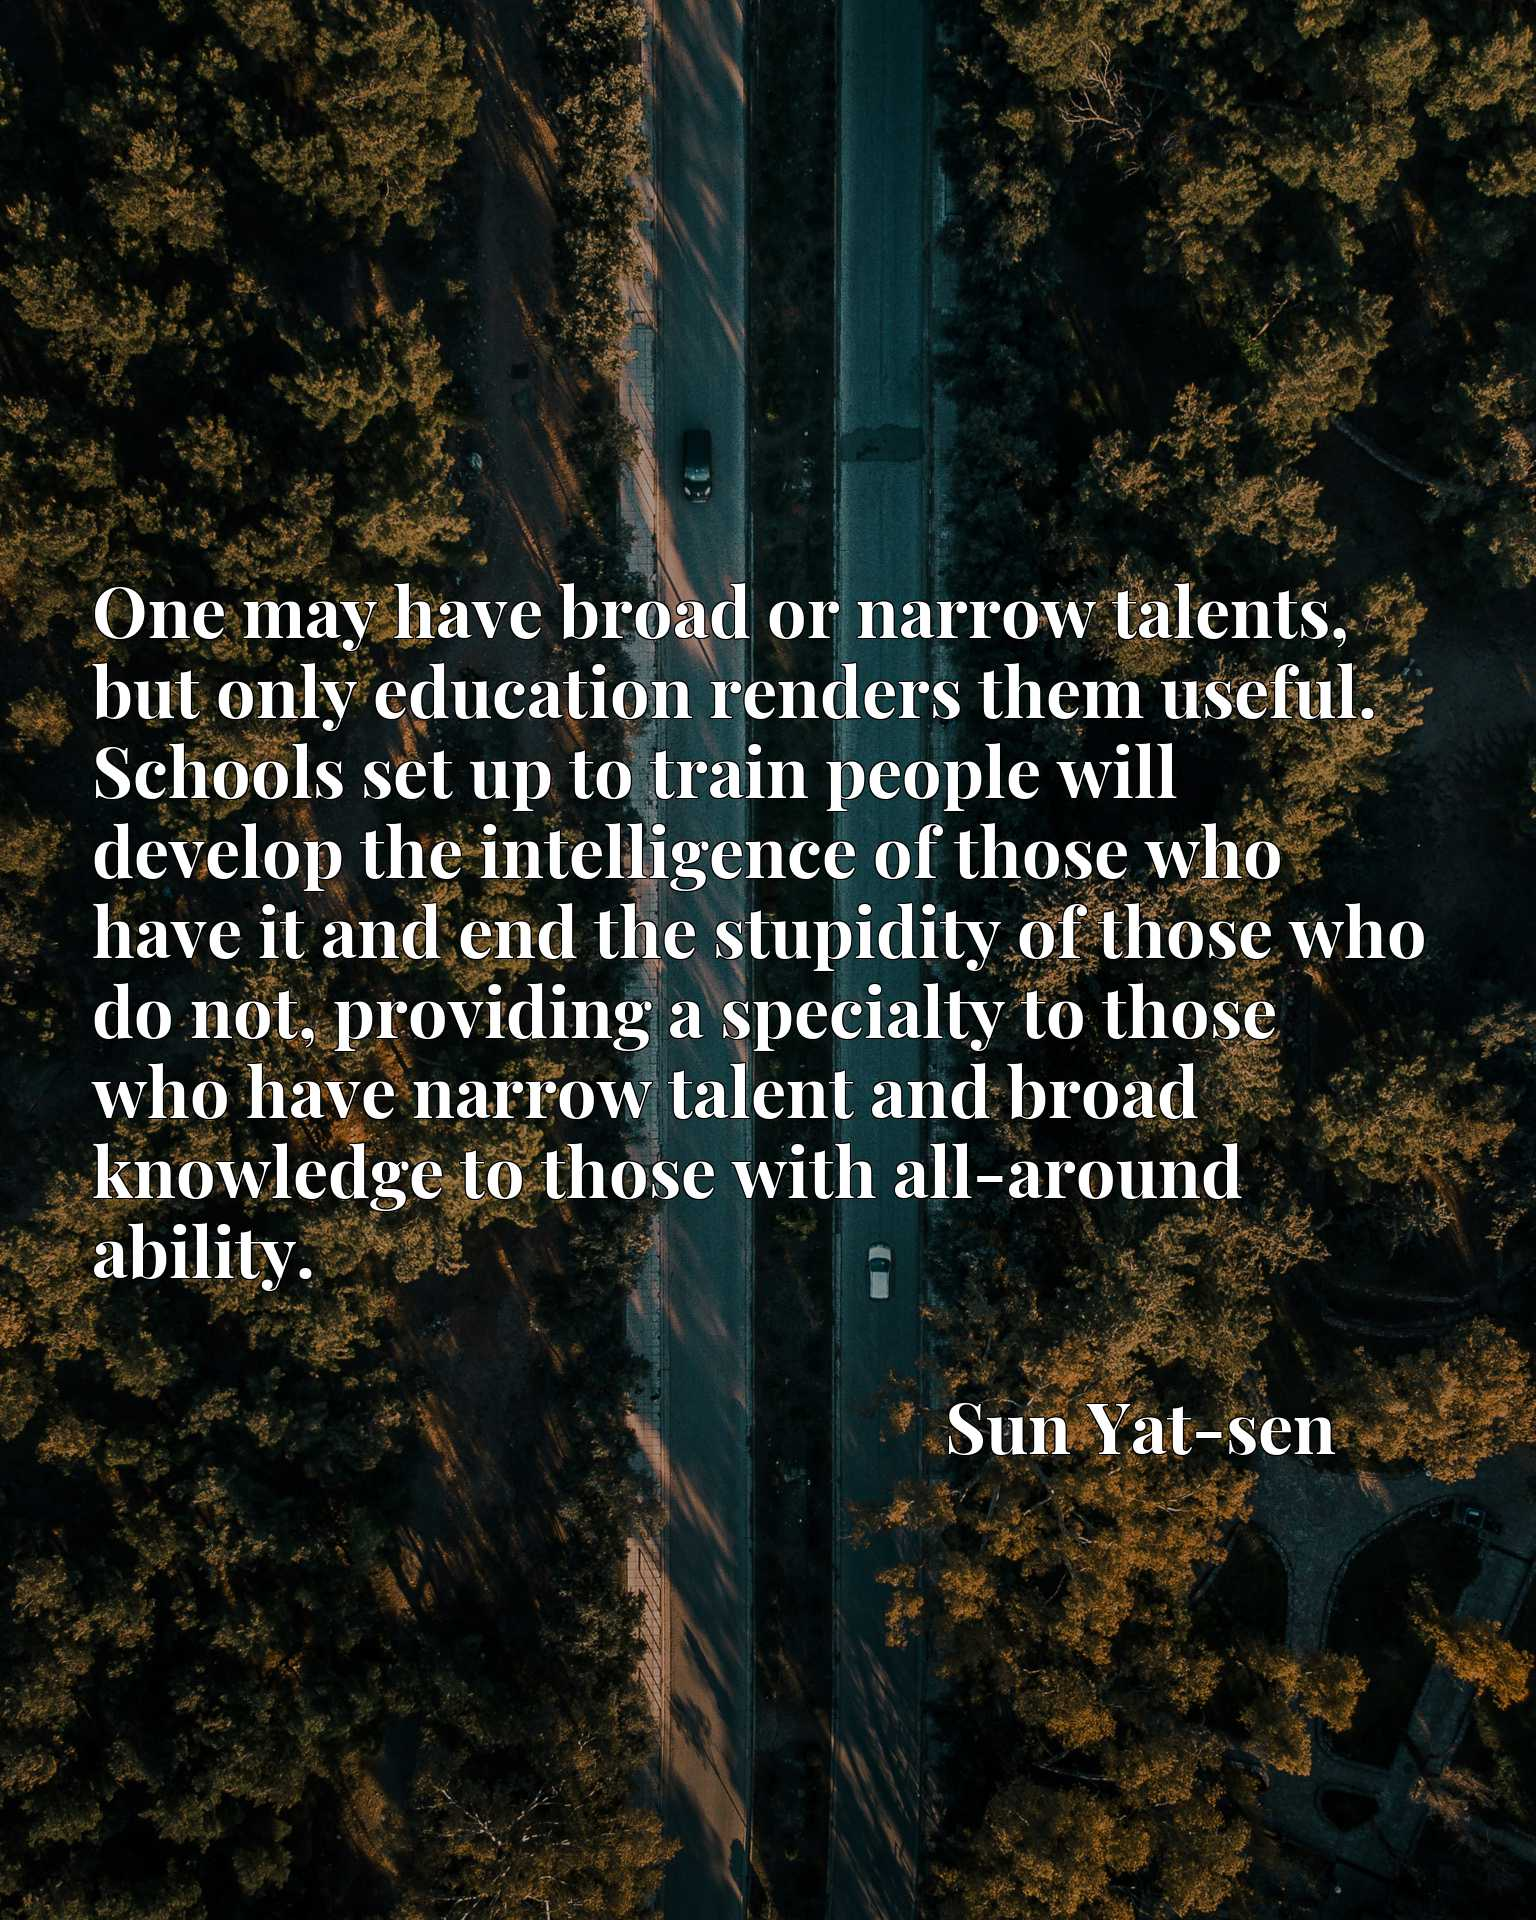 One may have broad or narrow talents, but only education renders them useful. Schools set up to train people will develop the intelligence of those who have it and end the stupidity of those who do not, providing a specialty to those who have narrow talent and broad knowledge to those with all-around ability.